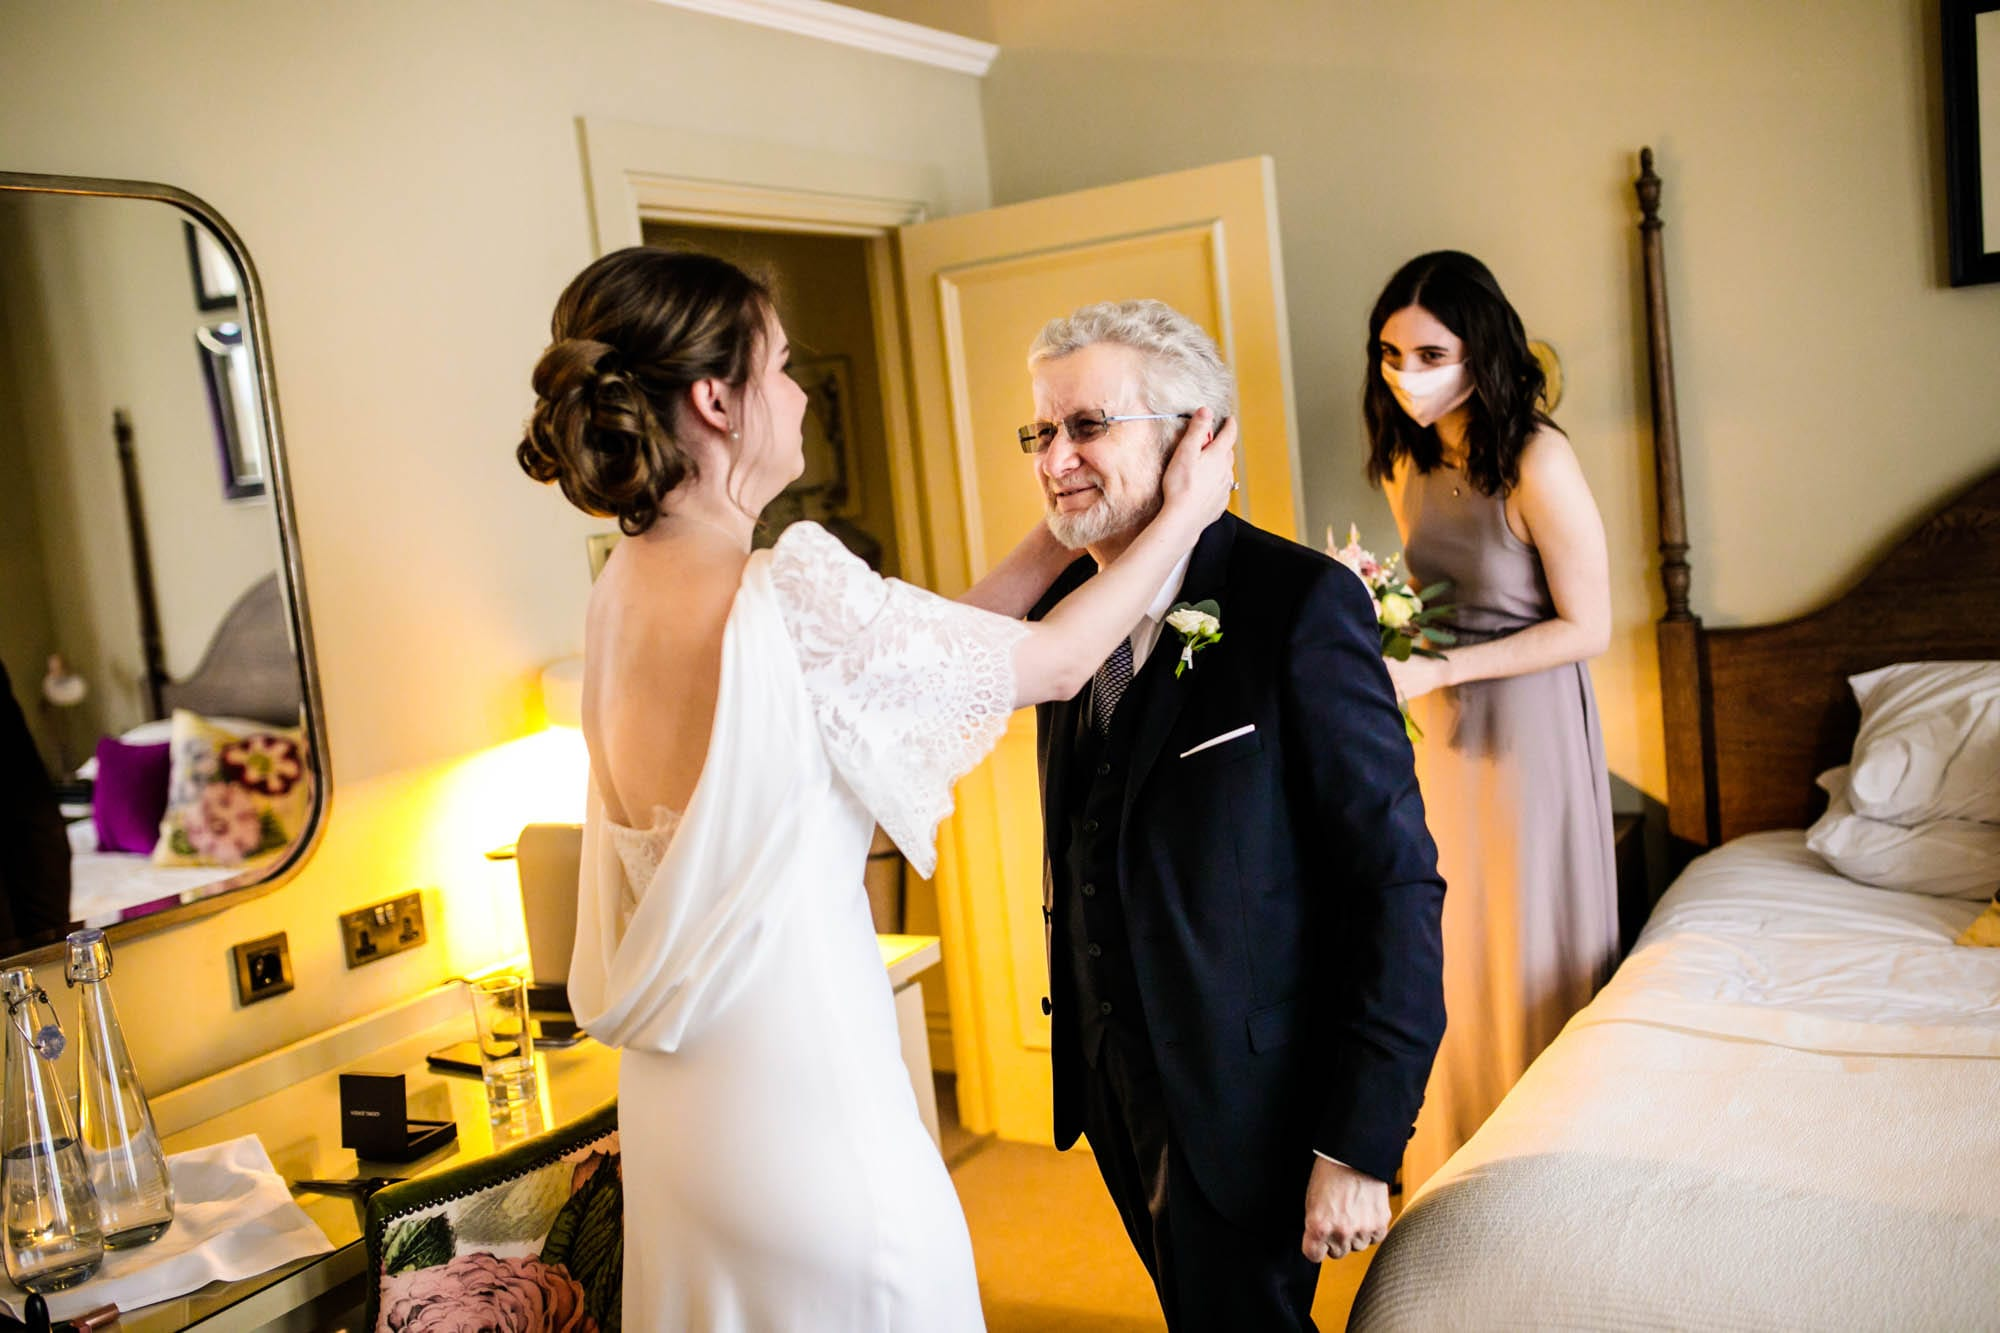 Father of the bride seeing bride for 1st time